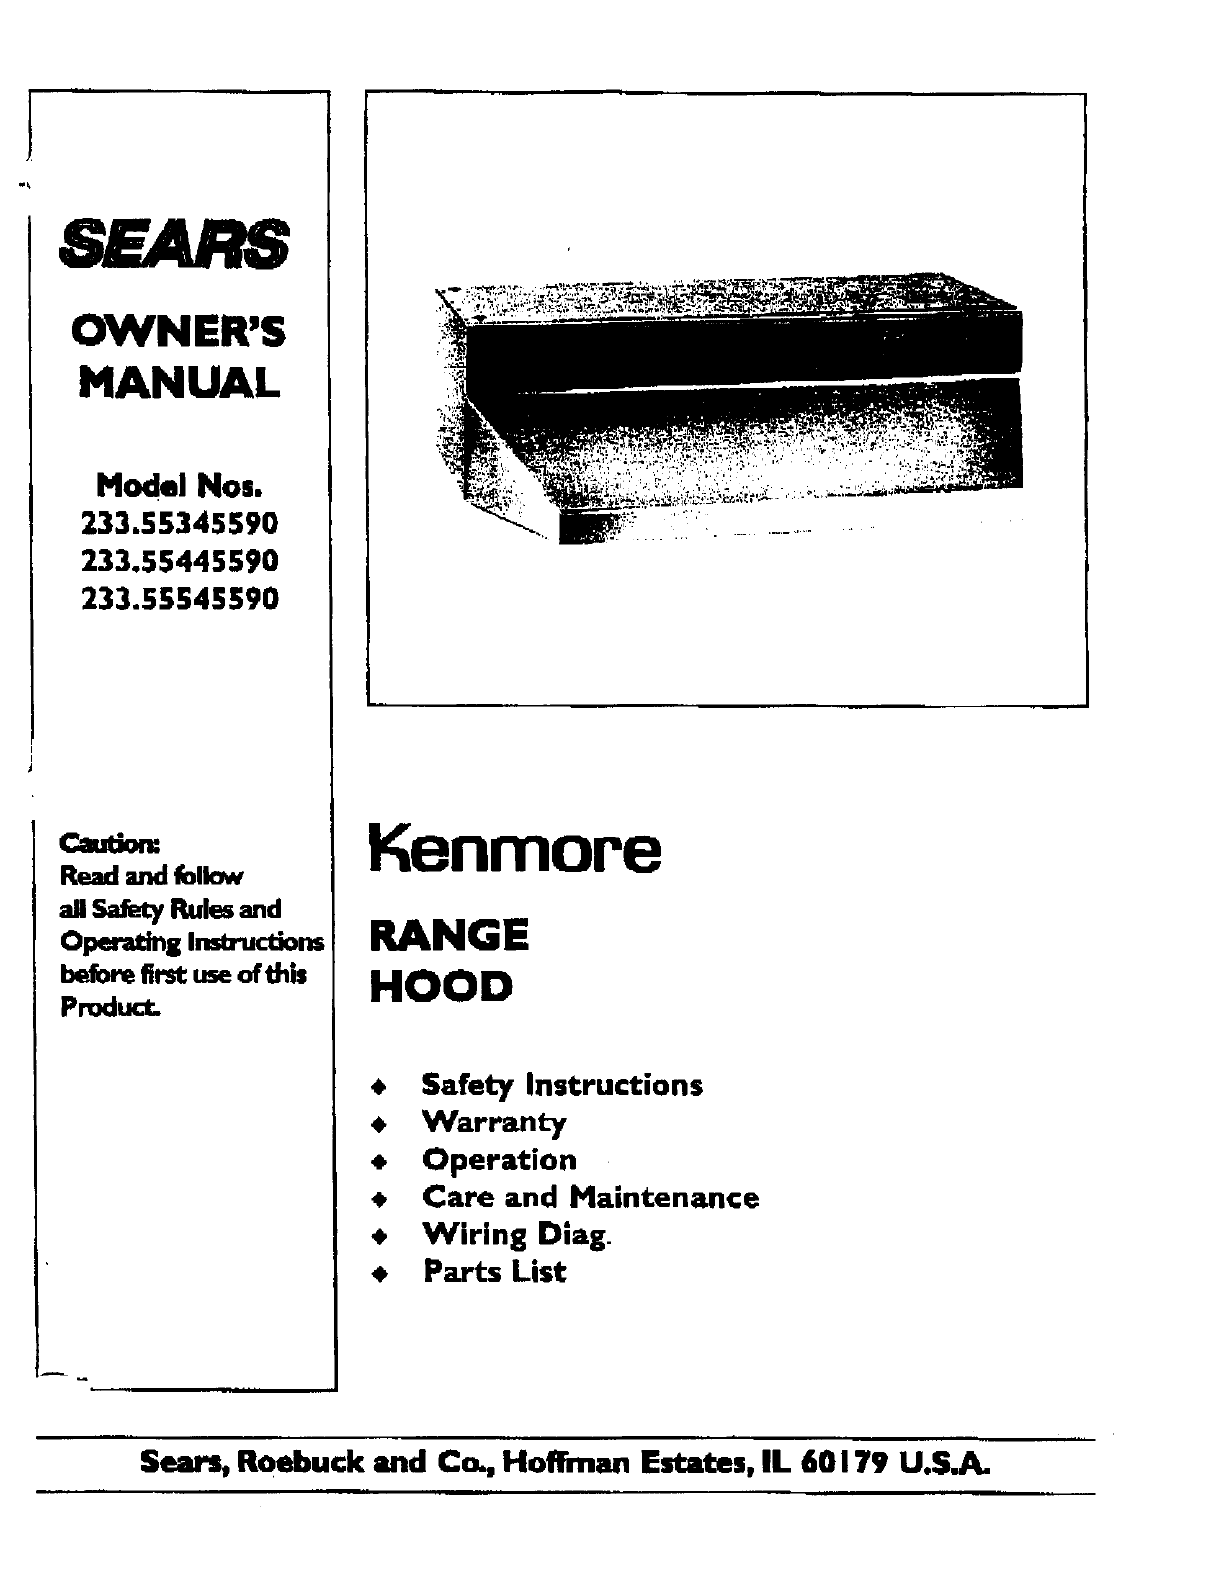 old sears battery charger manuals